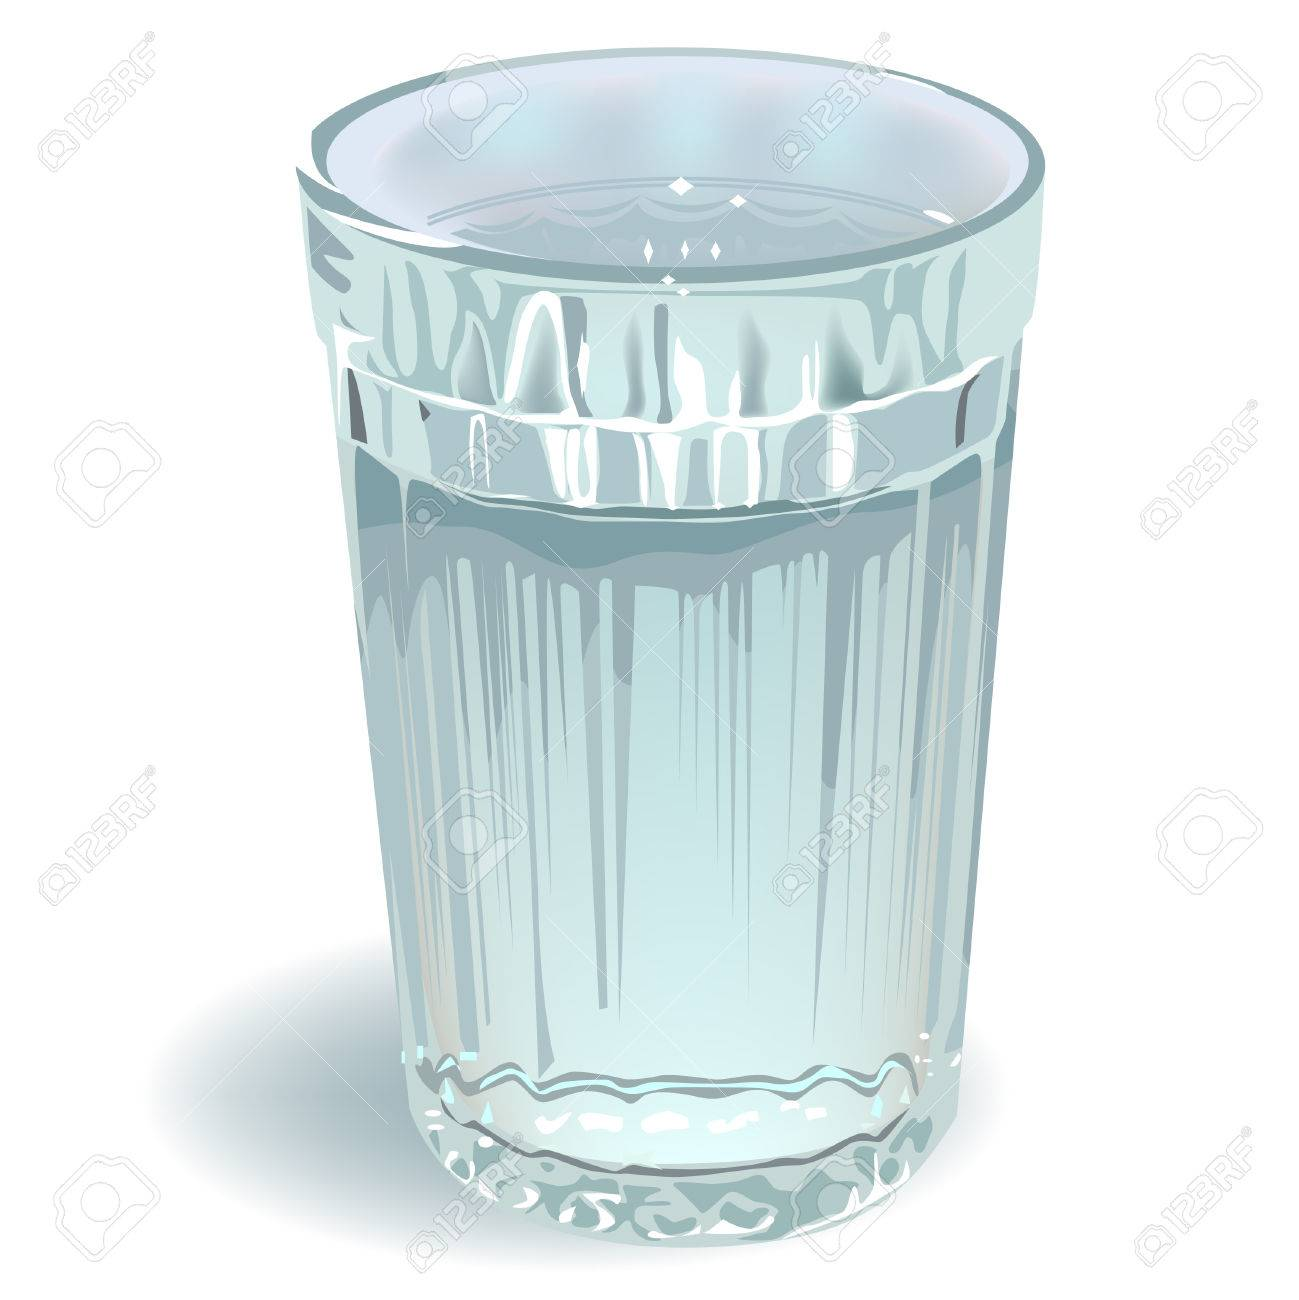 glass of water - 8017296